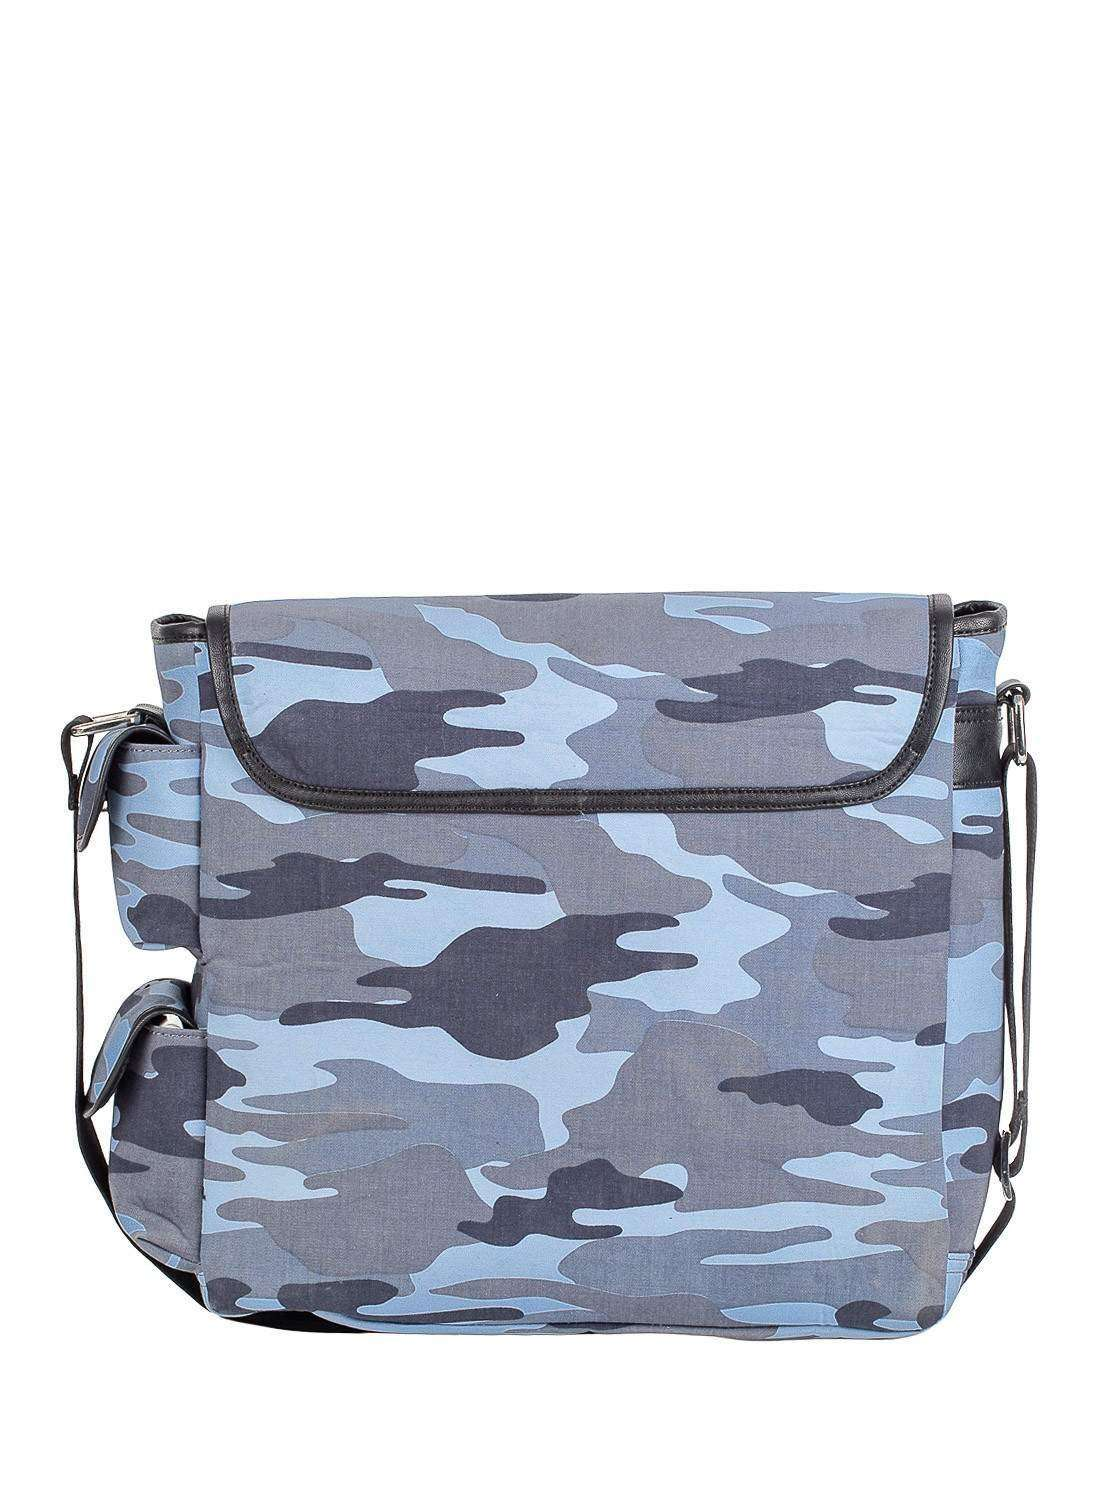 BlueNordic Arms Crossbody